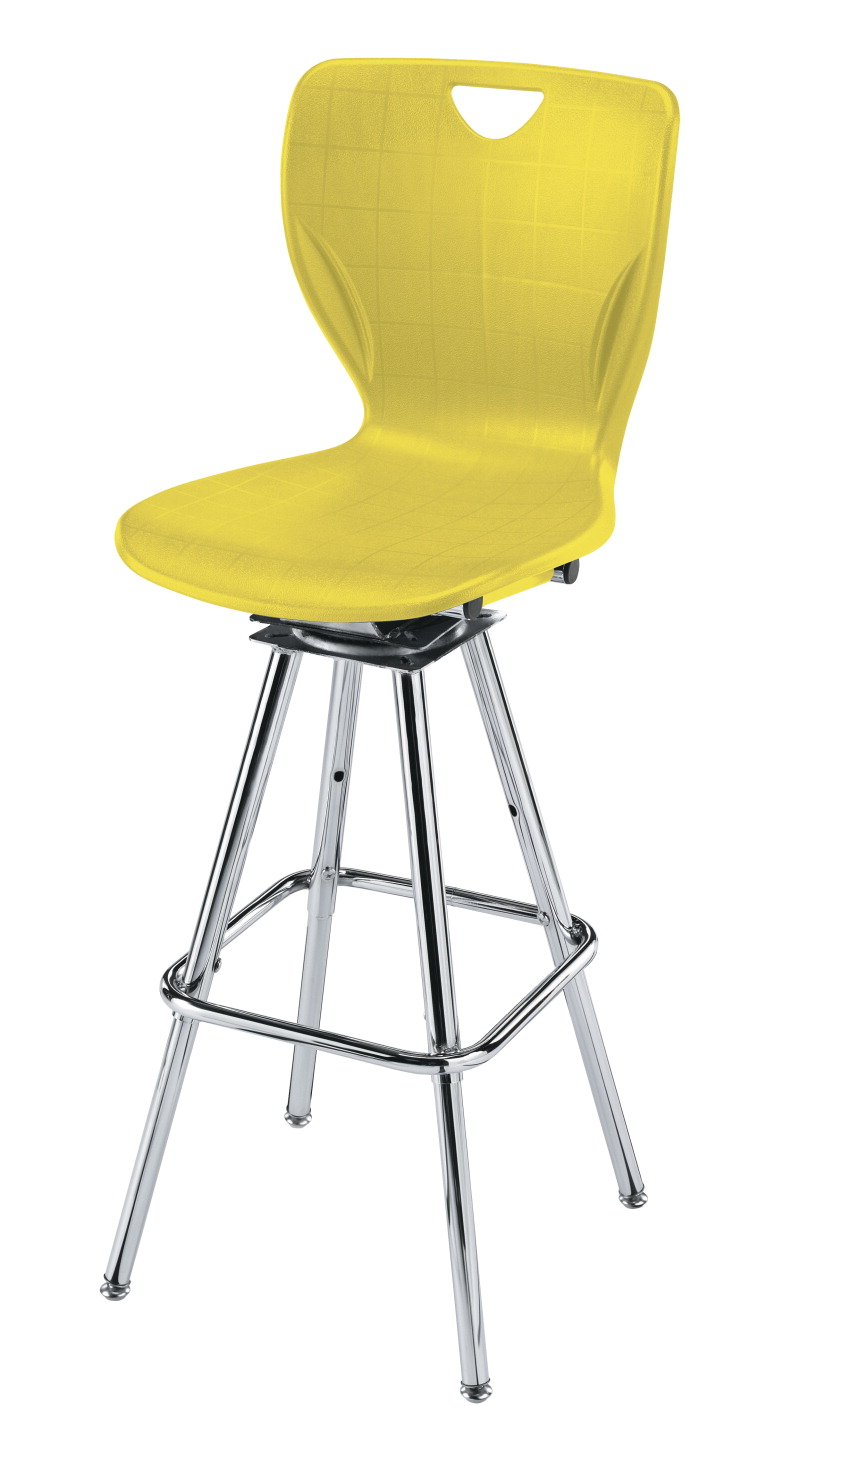 Classroom Select Contemporary Swivel Stool, Adjustable Height, A Shell, Chrome Frame